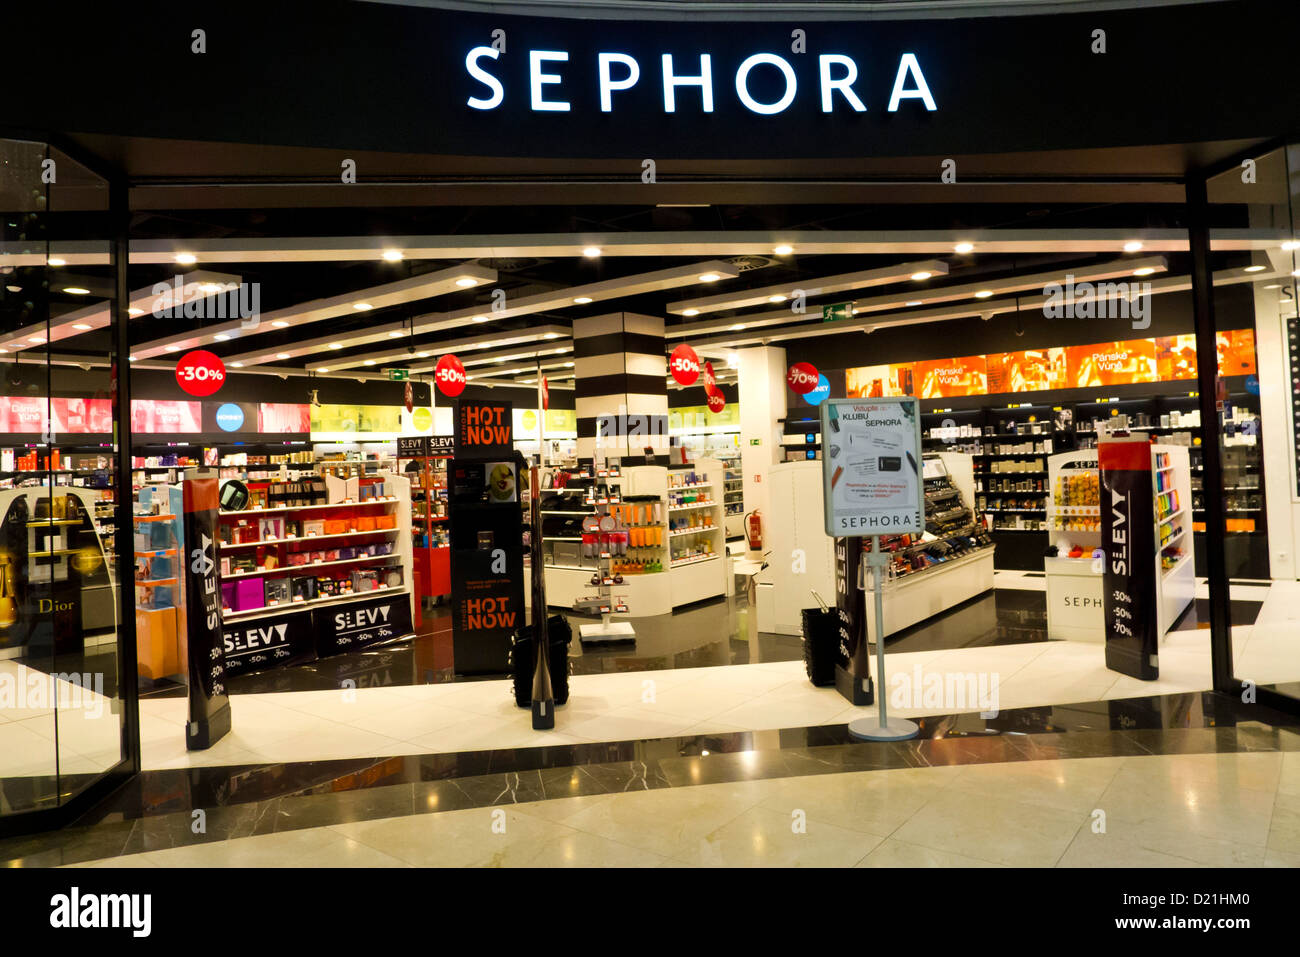 Sephora shop Stock Photo, Royalty Free Image: 52896256 - Alamy